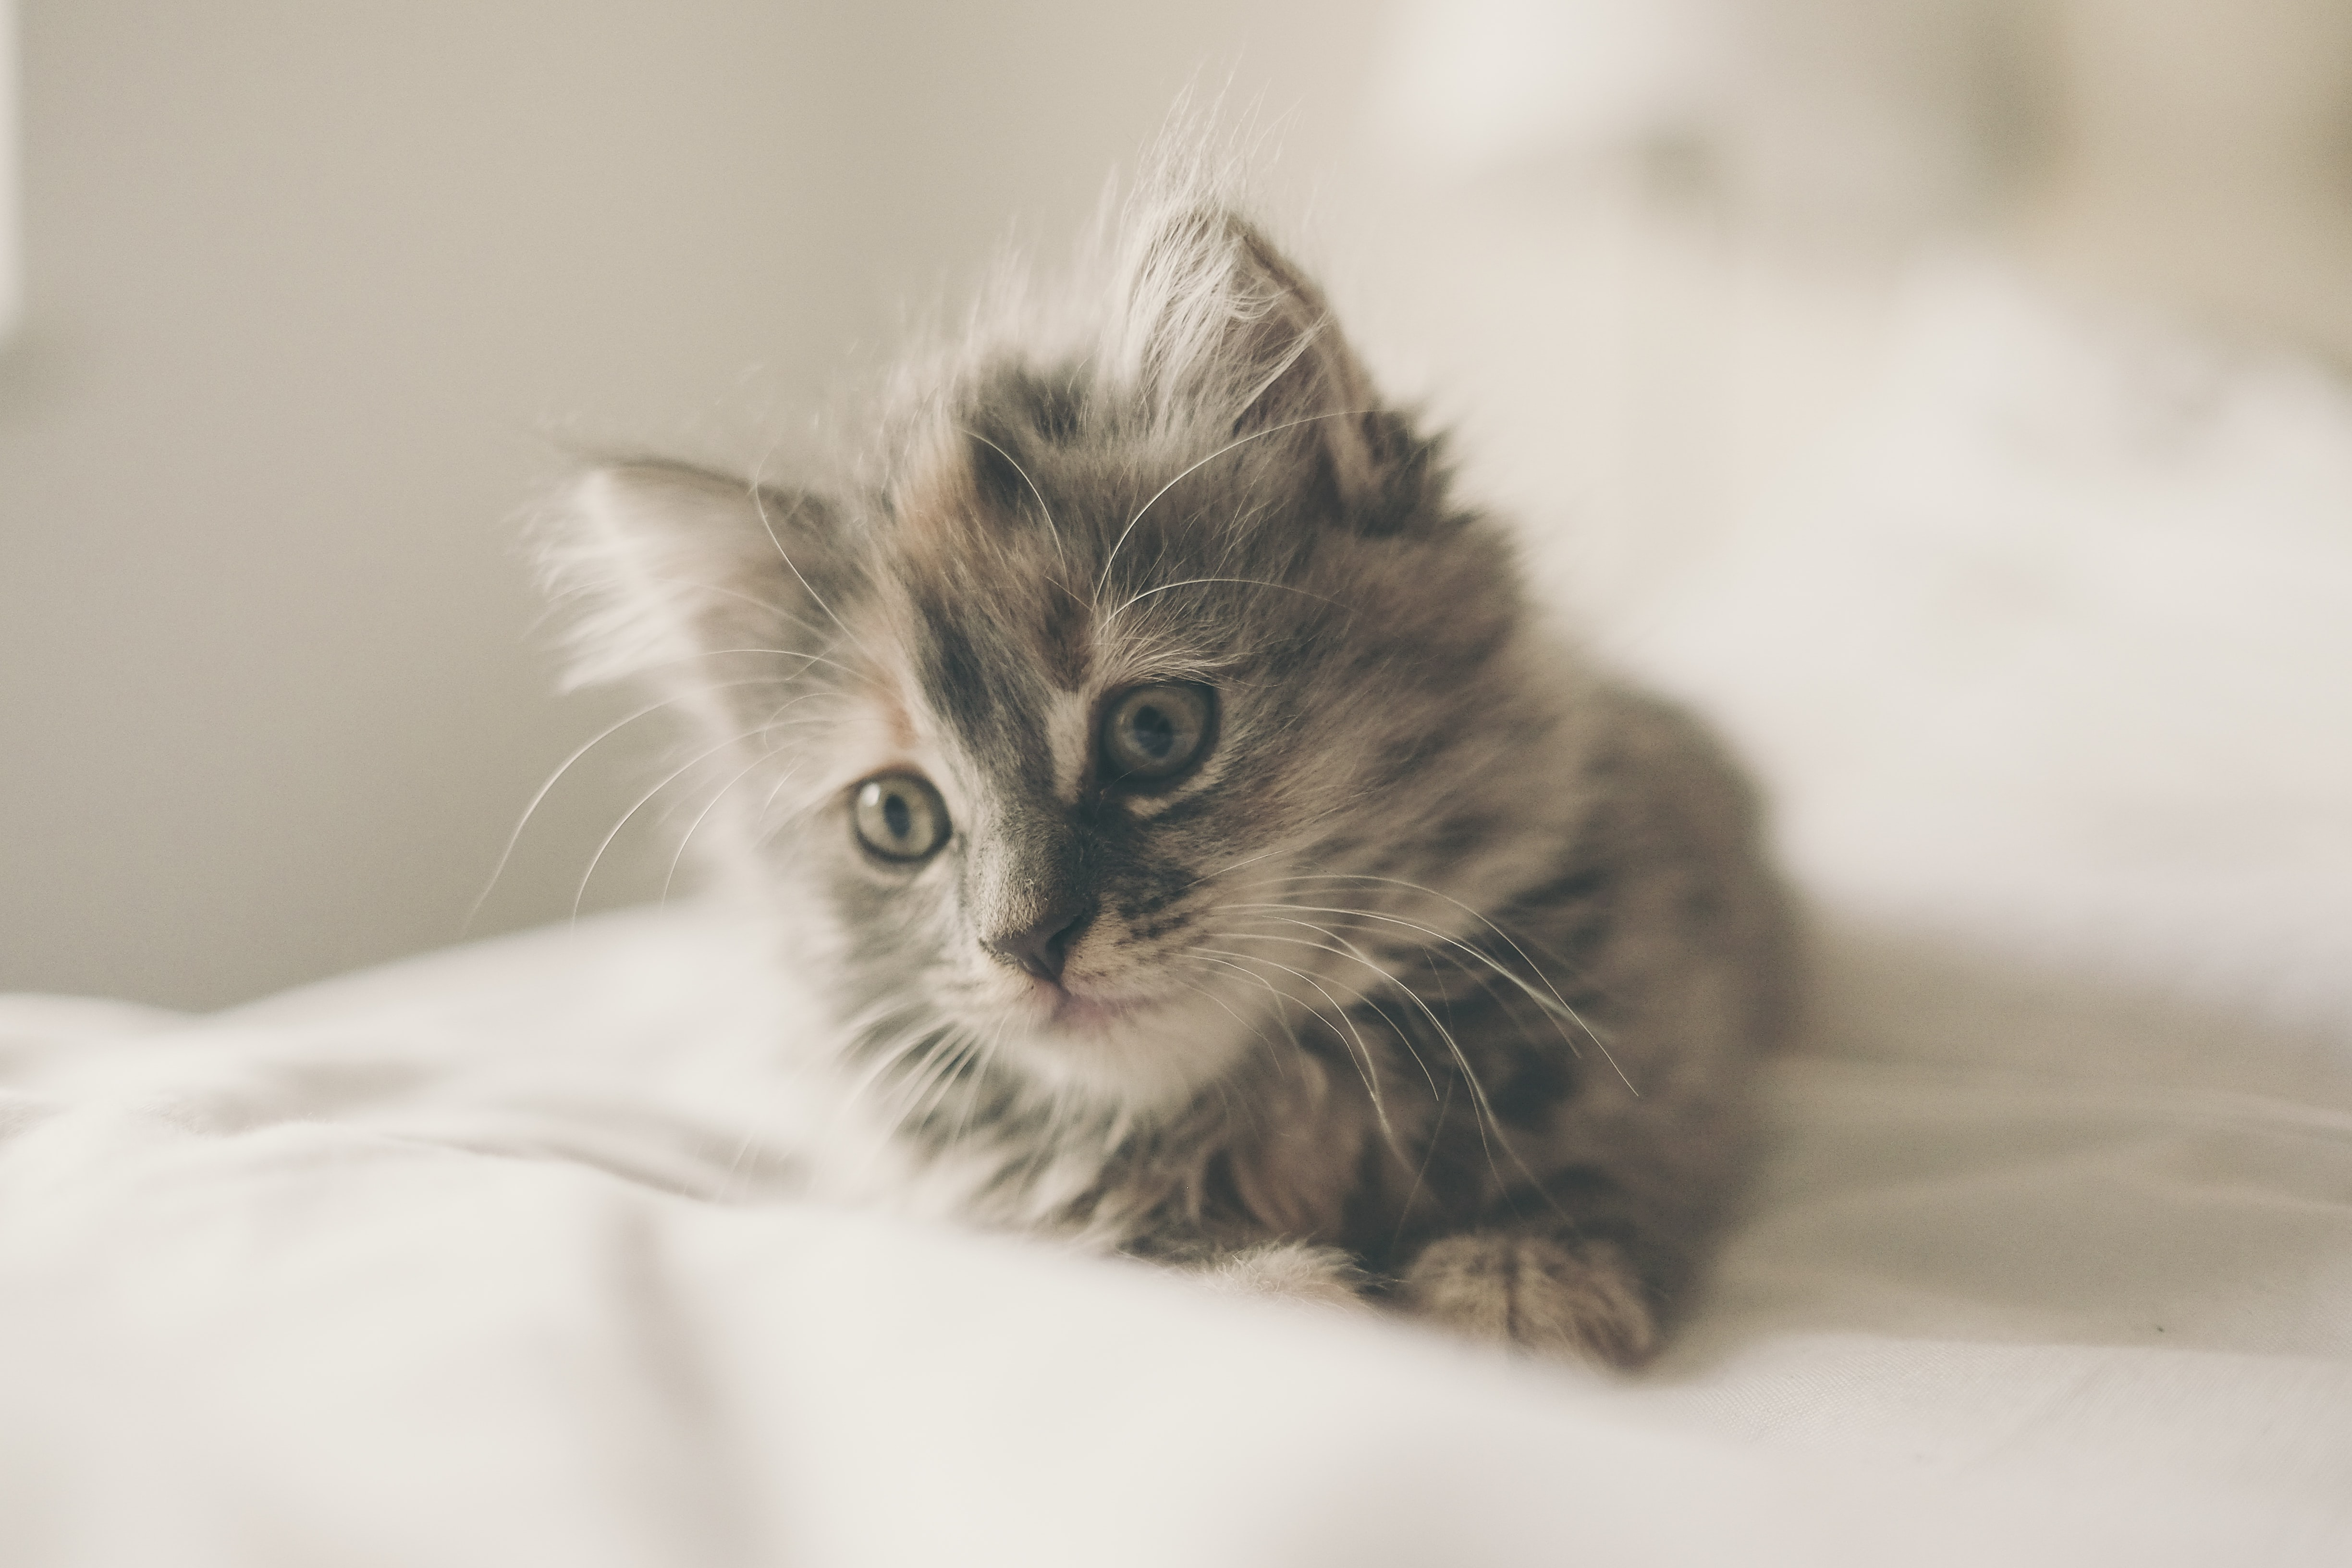 A furry kitten on a white sheet